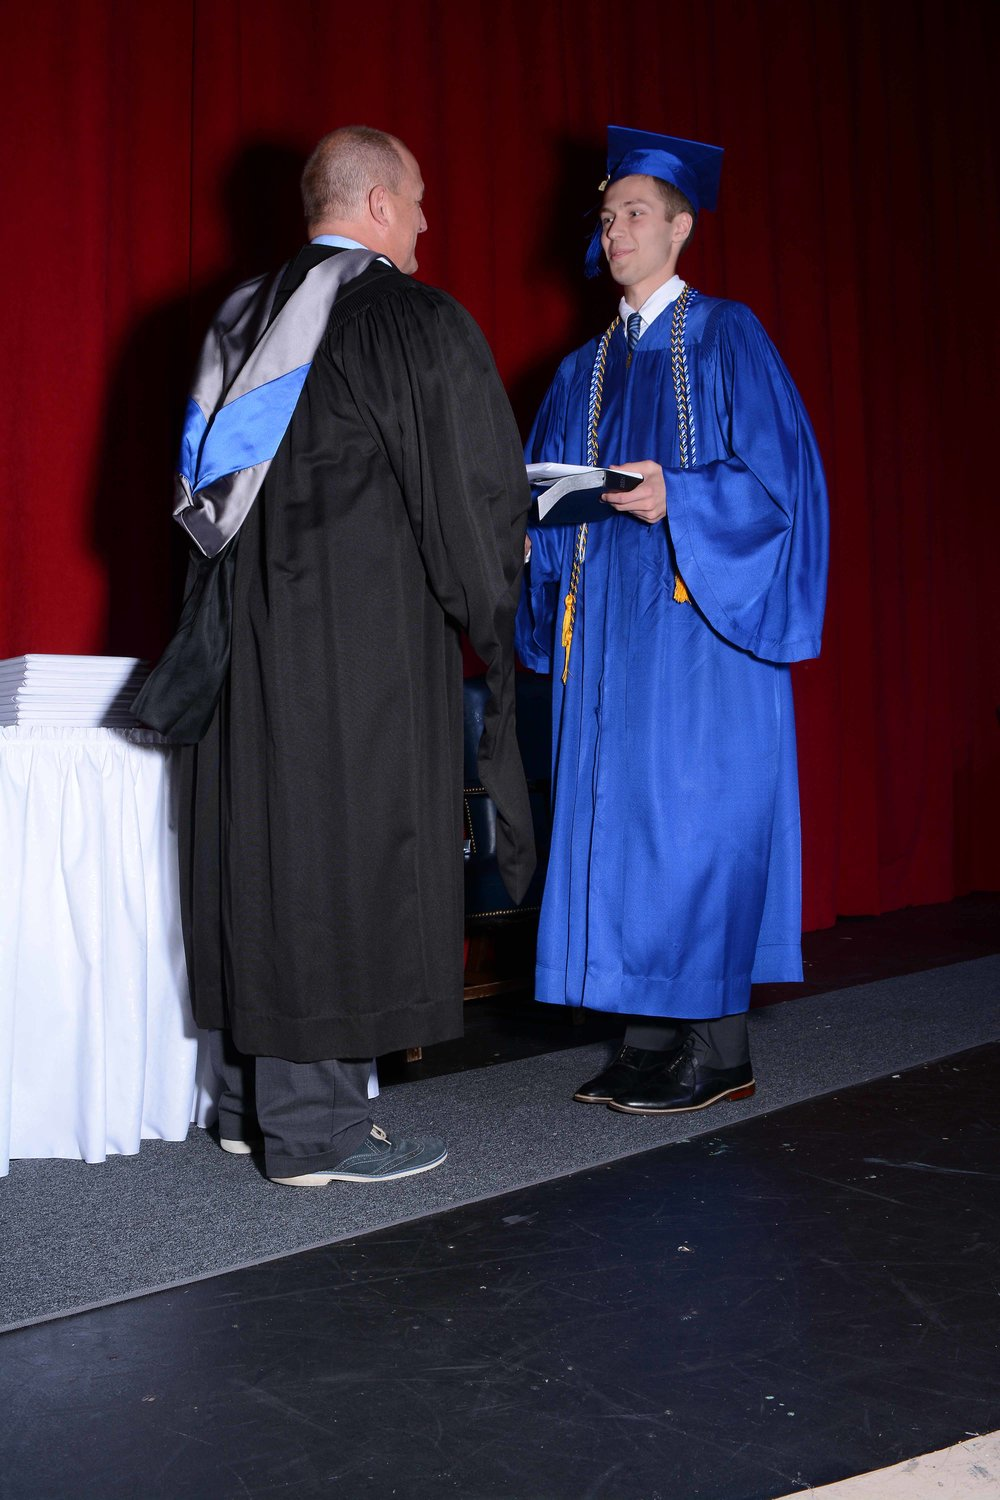 May14 Commencement67.jpg